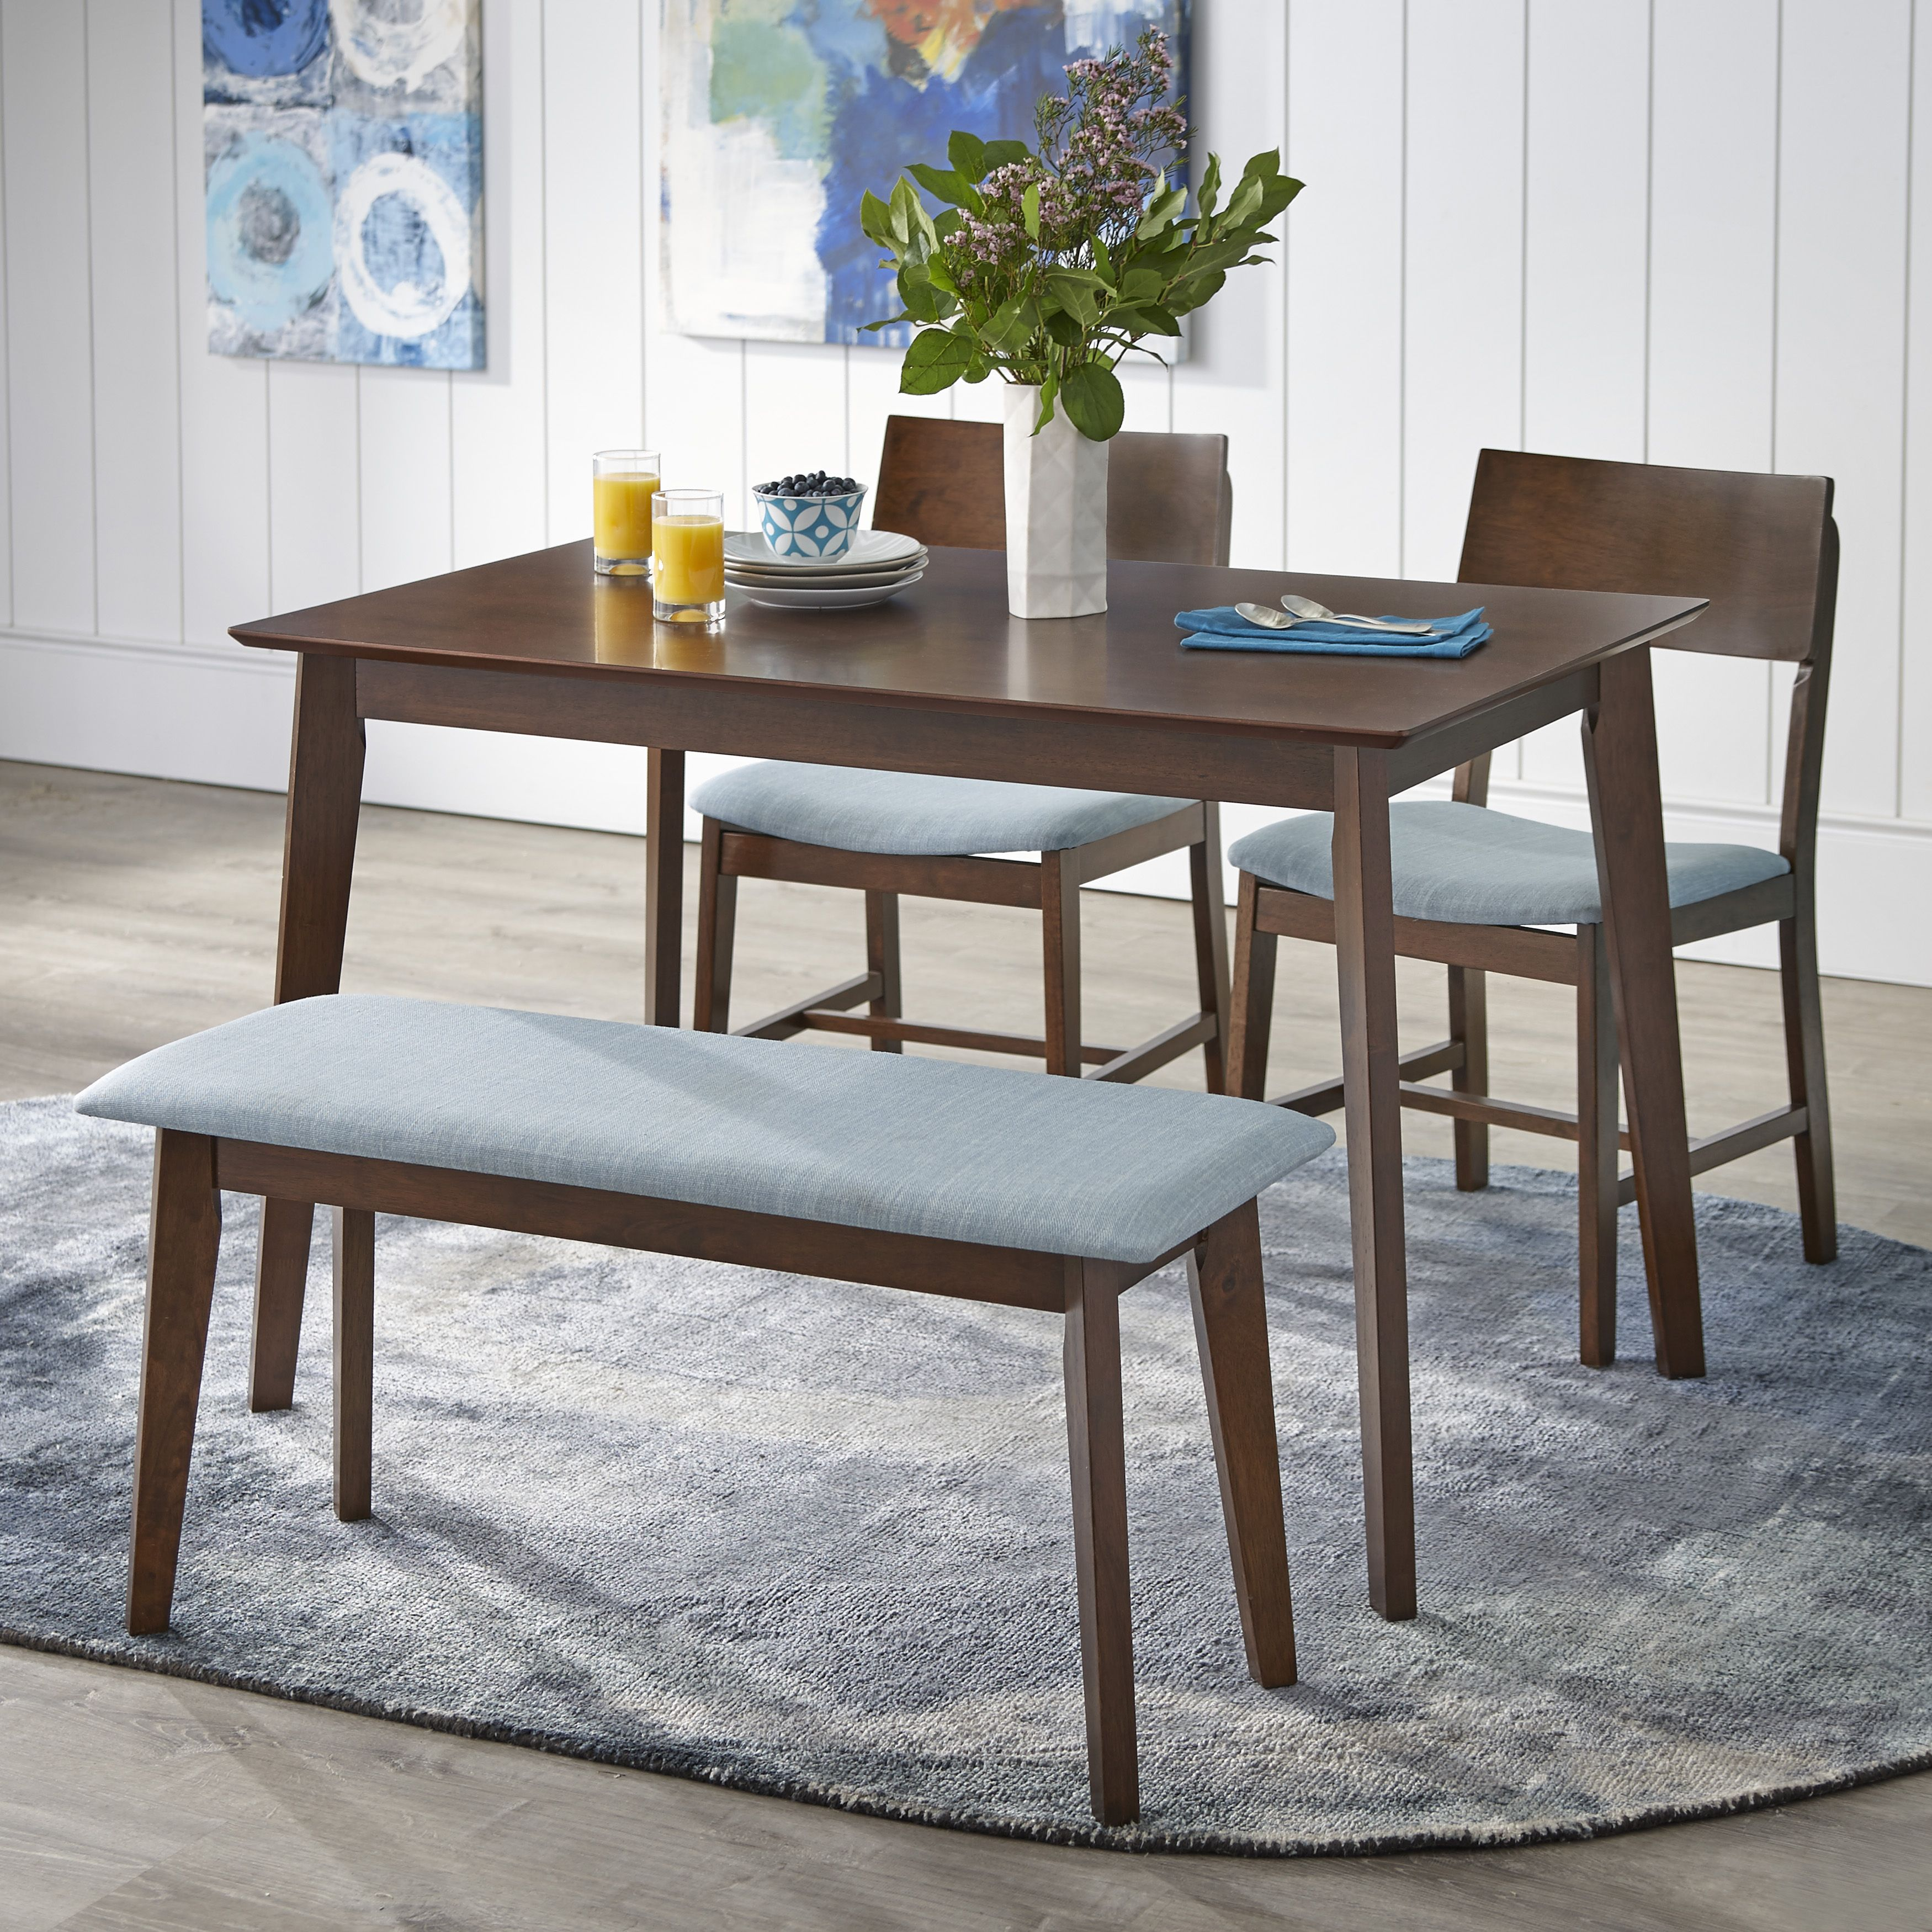 Home Dining Set With Bench Mid Century Dining Set Round Dining